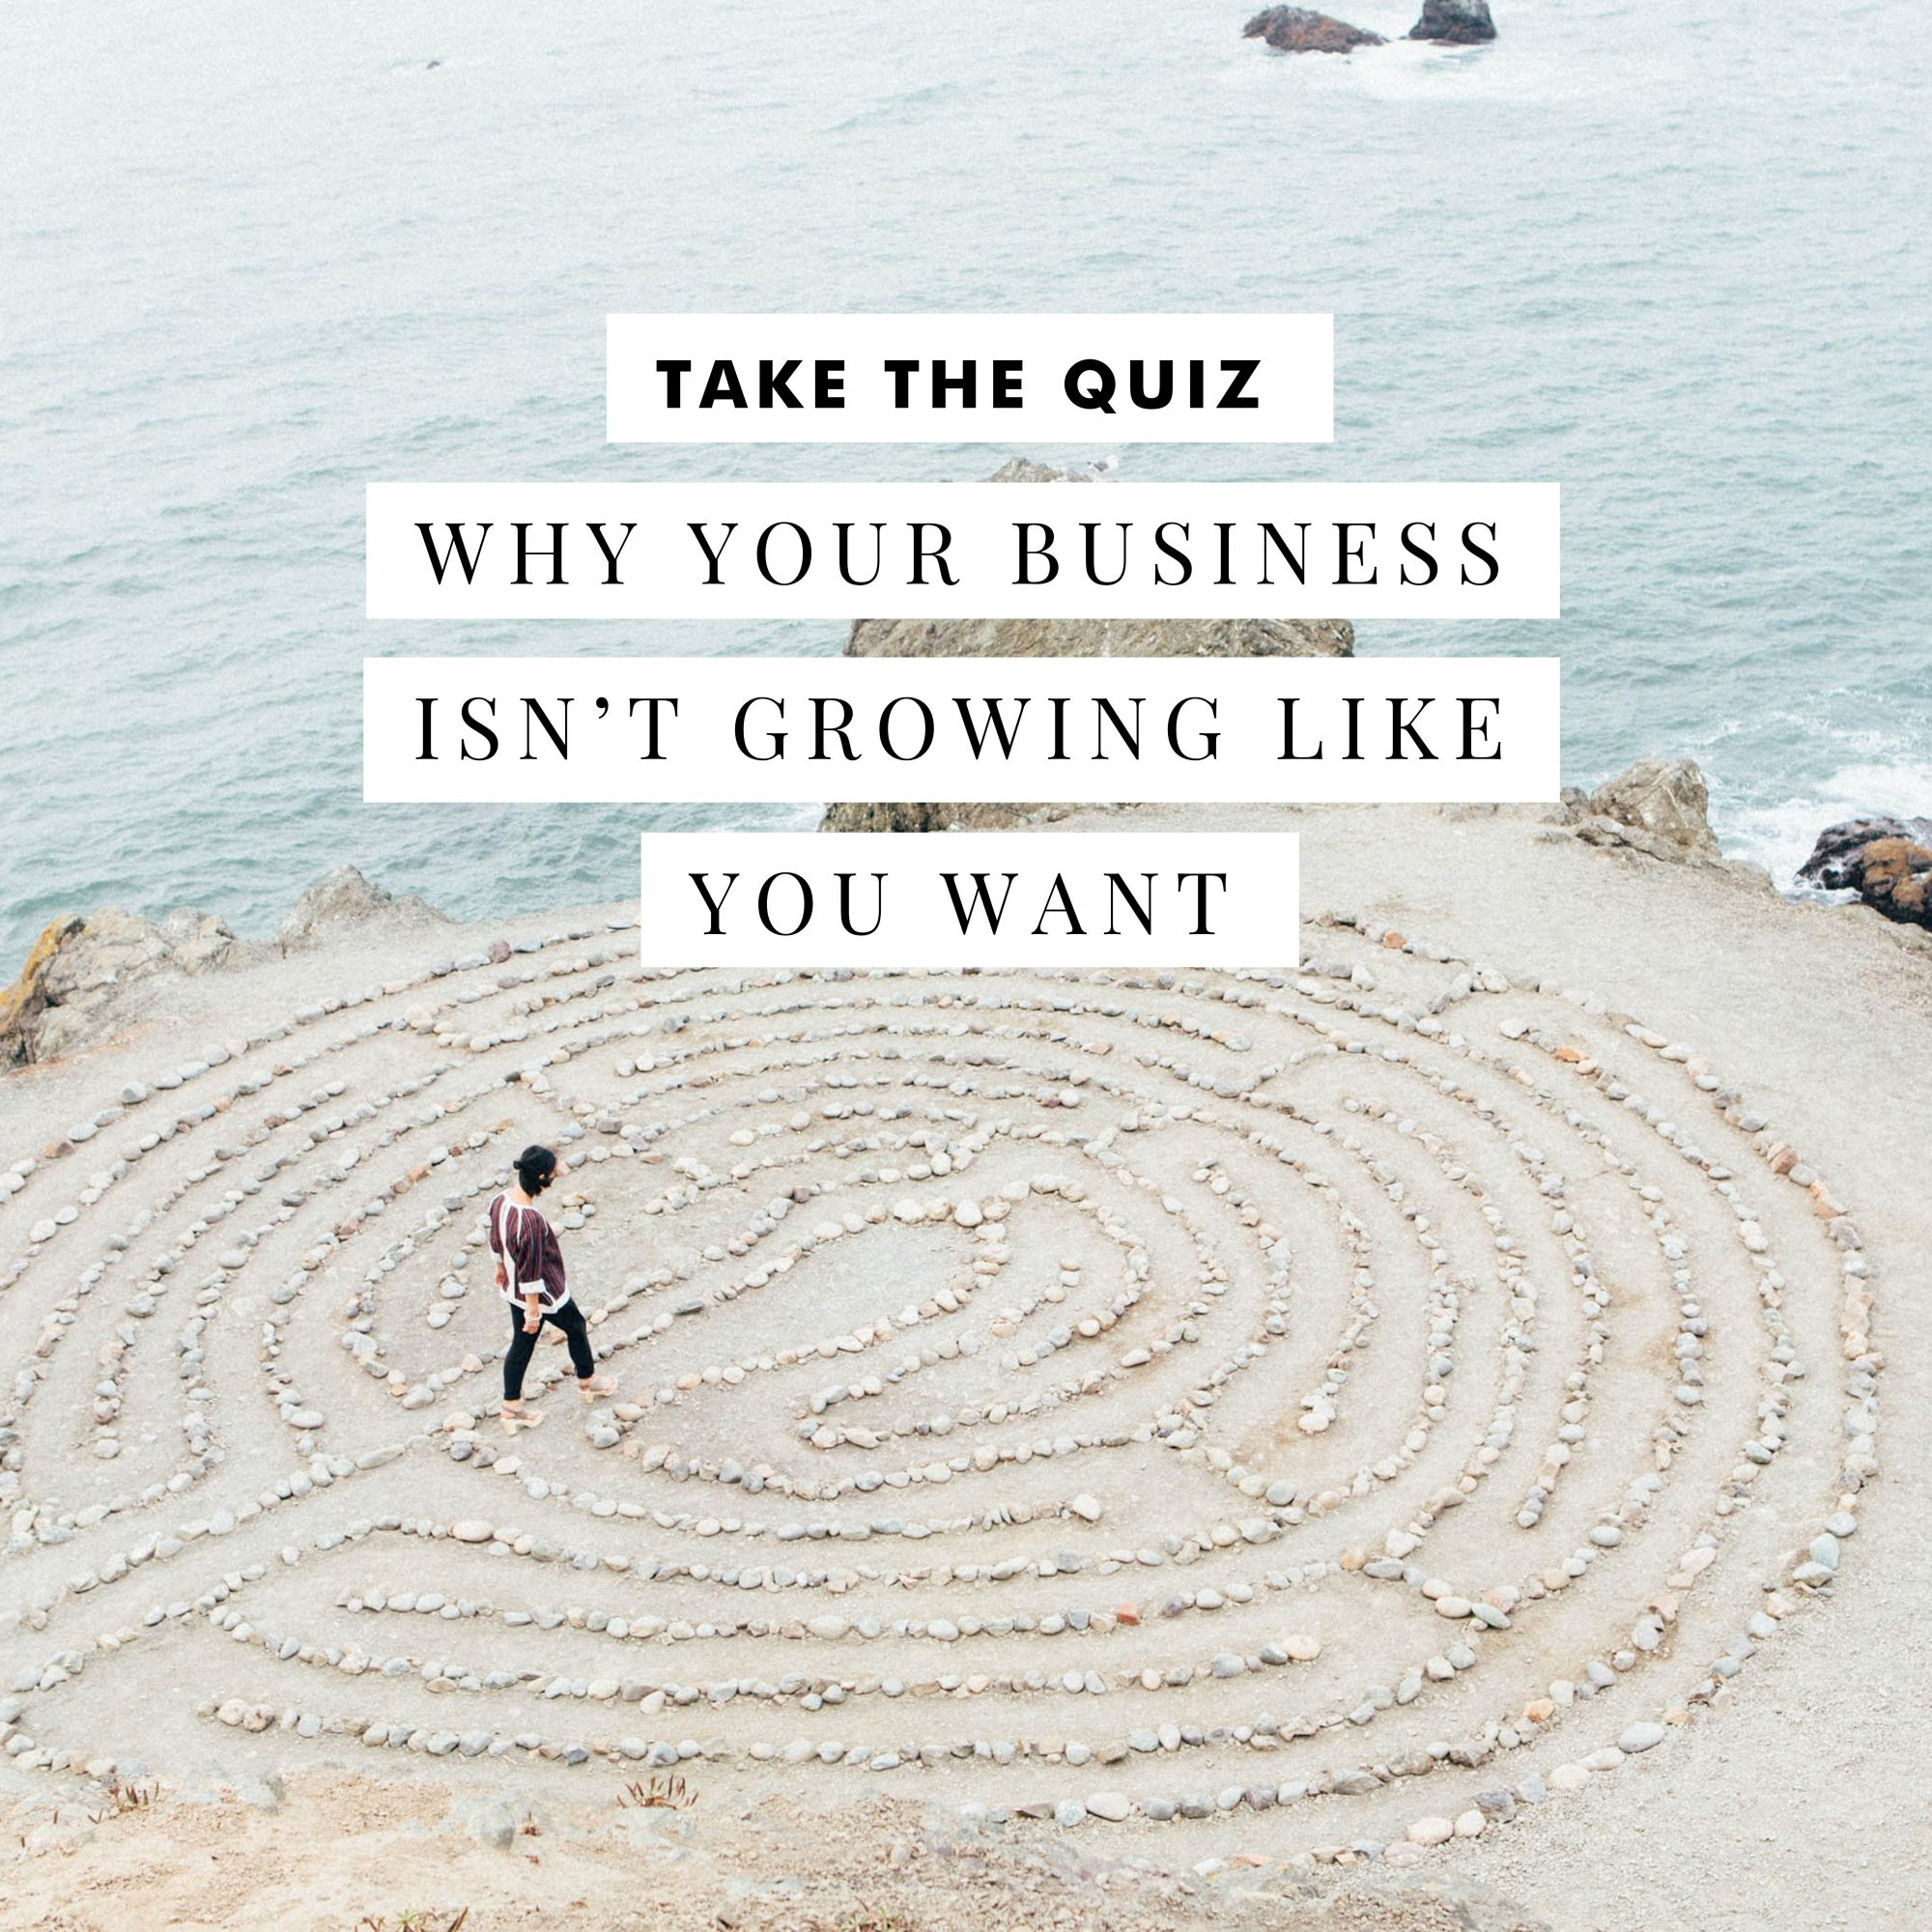 QUIZ: Why your business isn't growing like you want